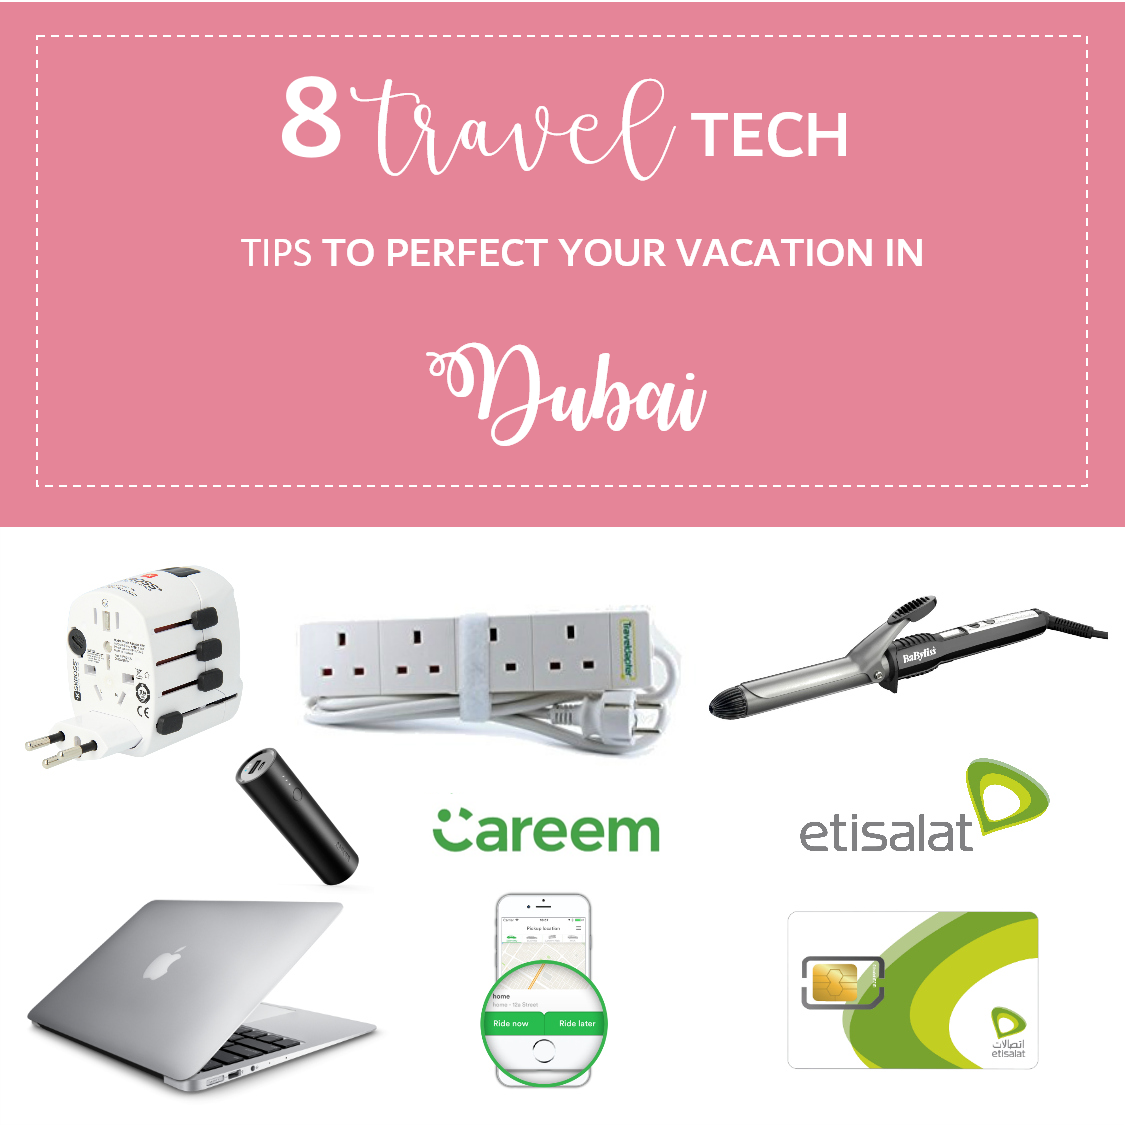 7 Travel Tech Tips to Perfect Your Vacation in Dubai